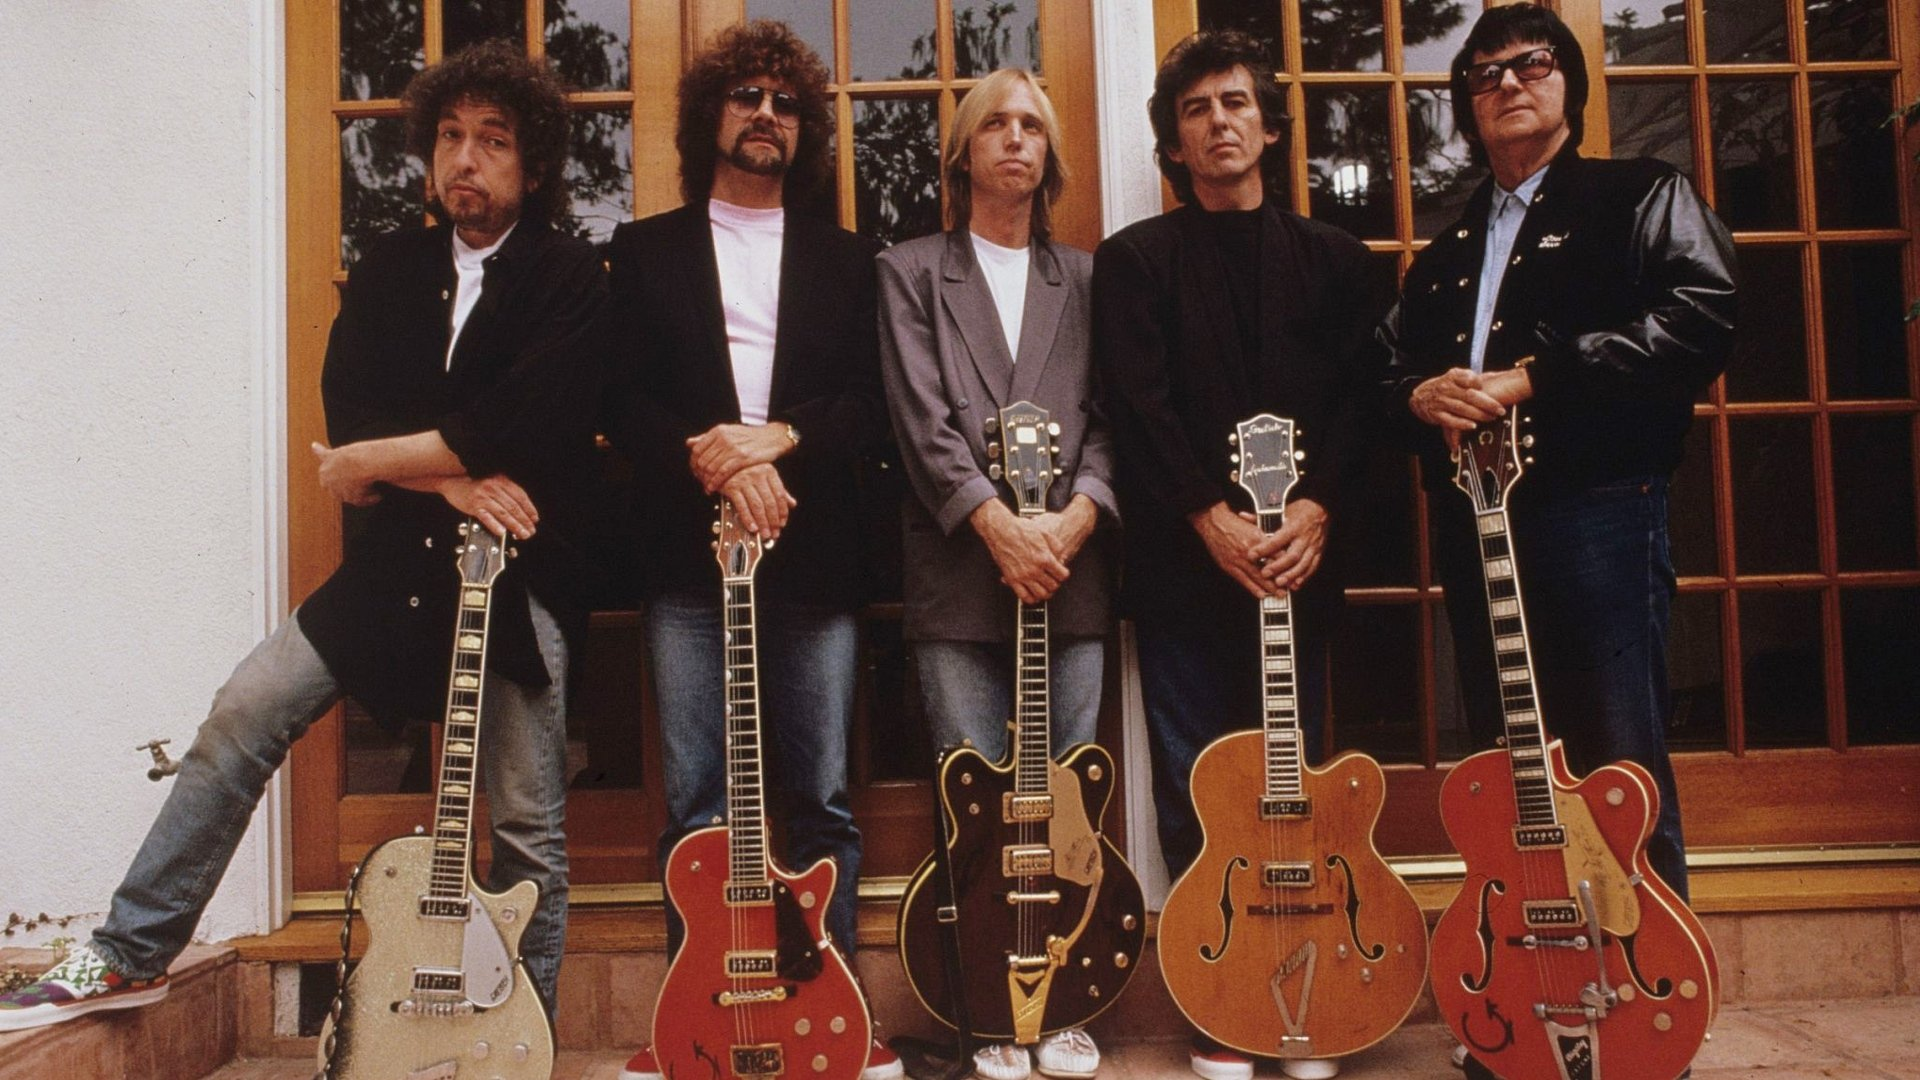 11 Tom Petty Hd Wallpapers Background Images Wallpaper Abyss